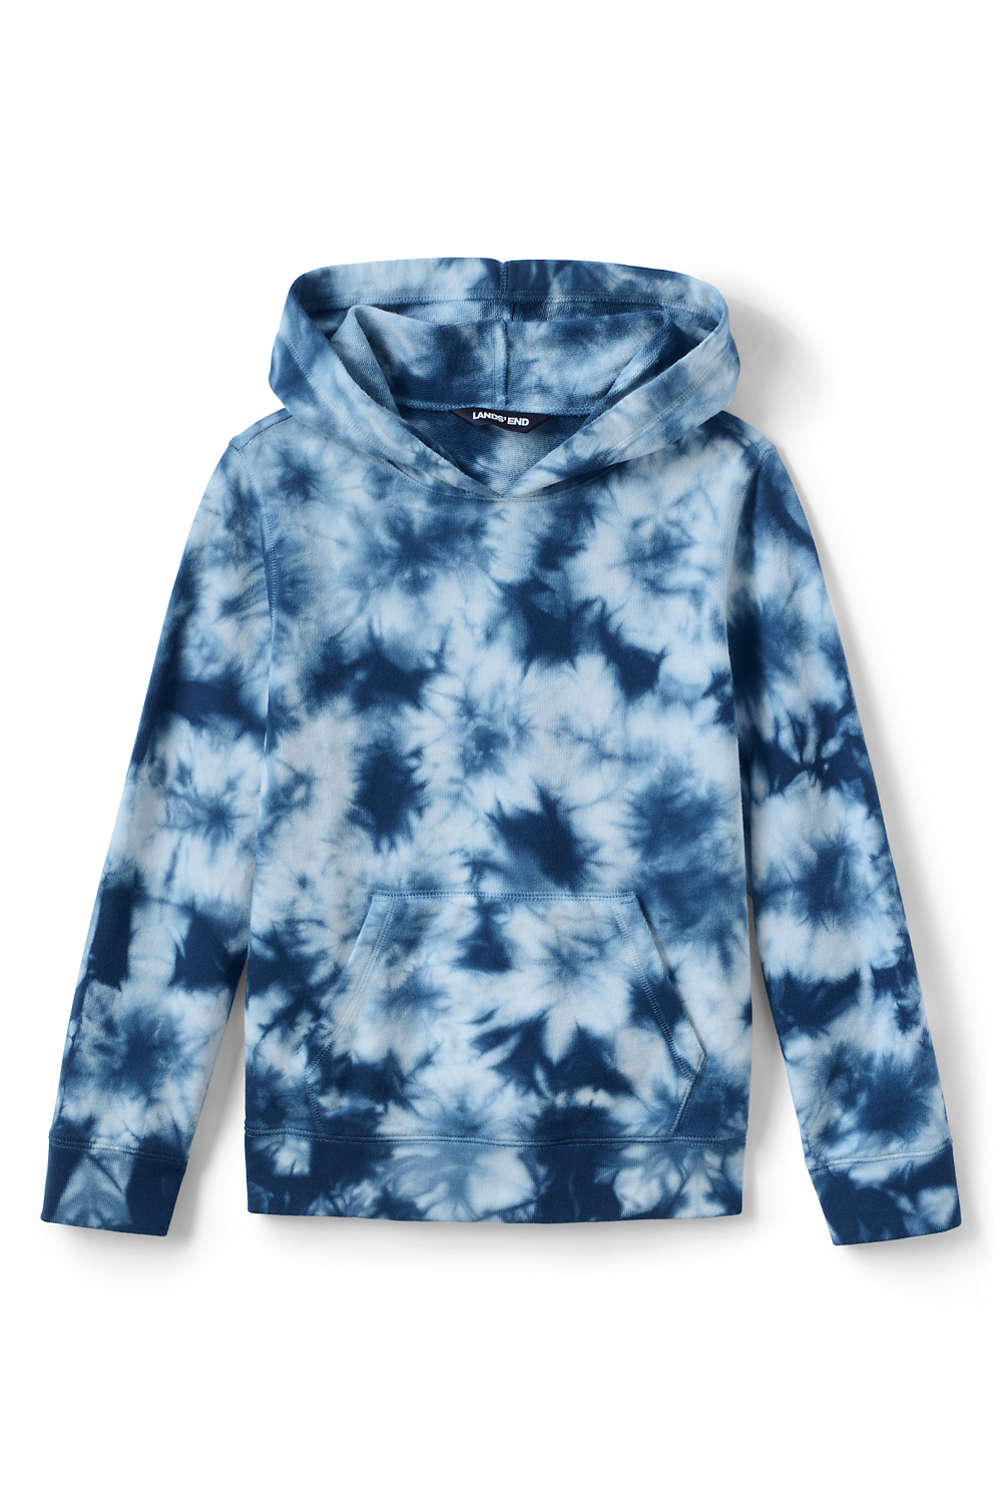 bd1c176b1 Boys Tie Dye Pullover Hoodie Sweatshirt from Lands' End